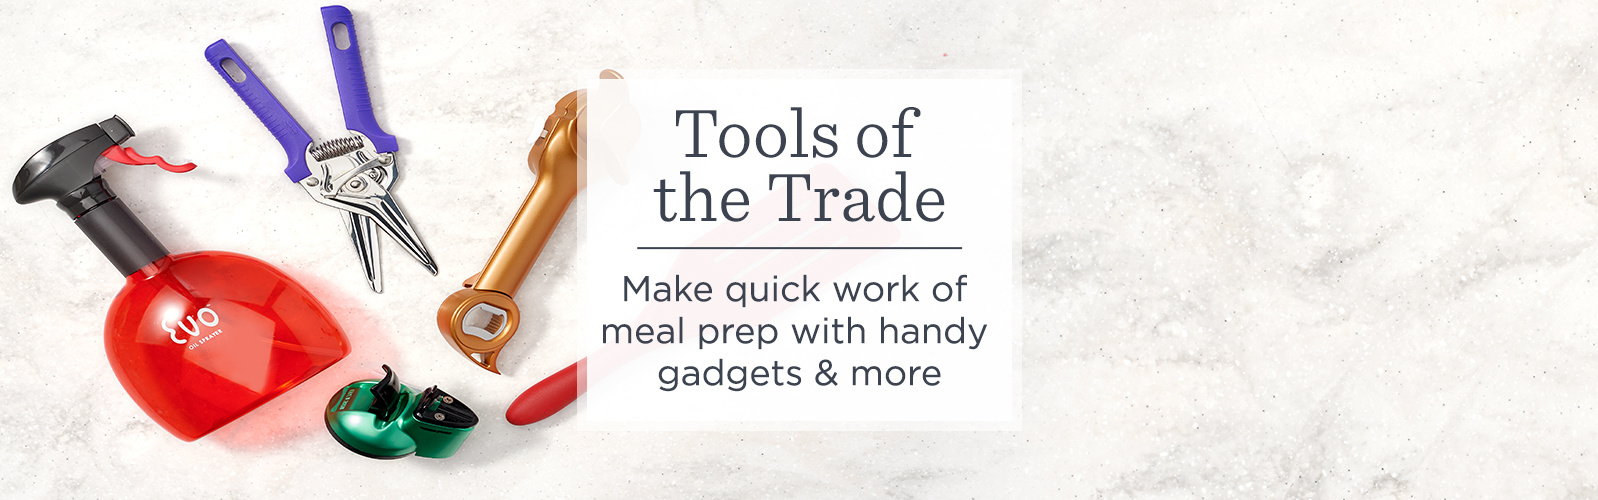 Tools of the Trade - Make quick work of meal prep with handy gadgets & more